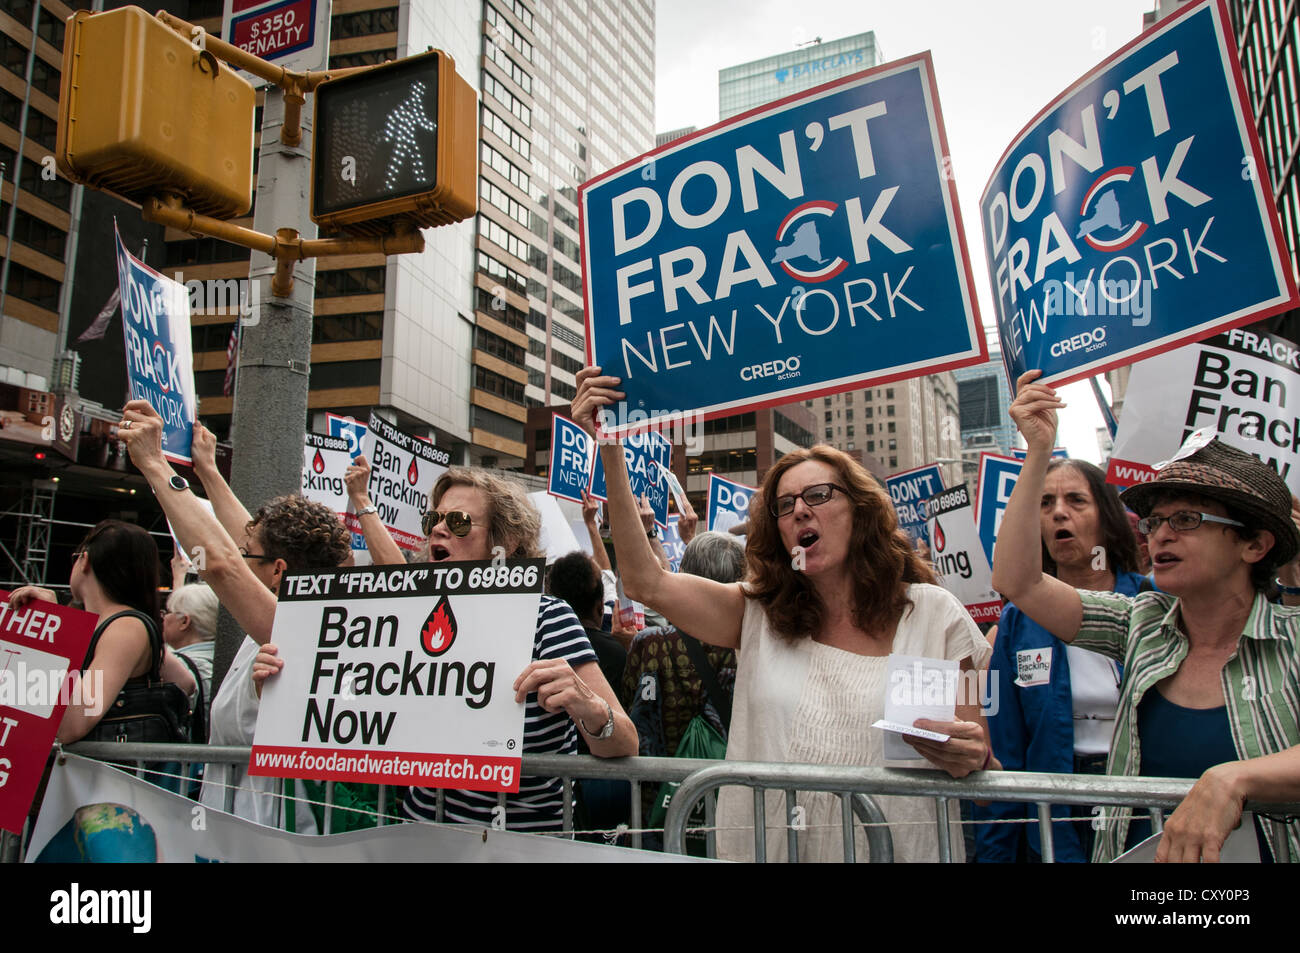 Activists demonstrate in a Manhattan protest against fracking for natural gas in New York outside NY Governor Cuomo's - Stock Image